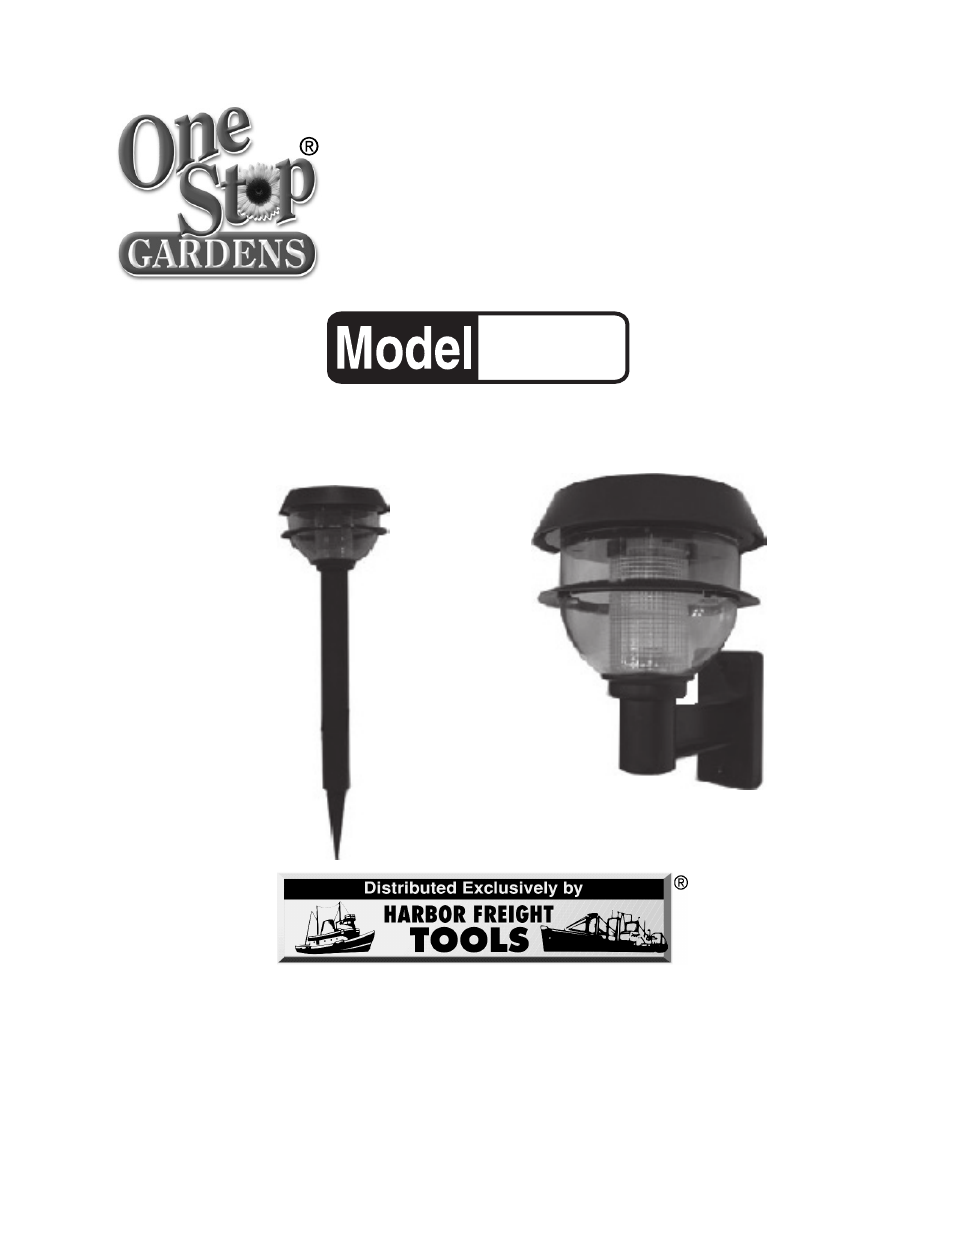 harbor freight tools solar light with wall mount and stake 90729 user manual 7 pages. Black Bedroom Furniture Sets. Home Design Ideas